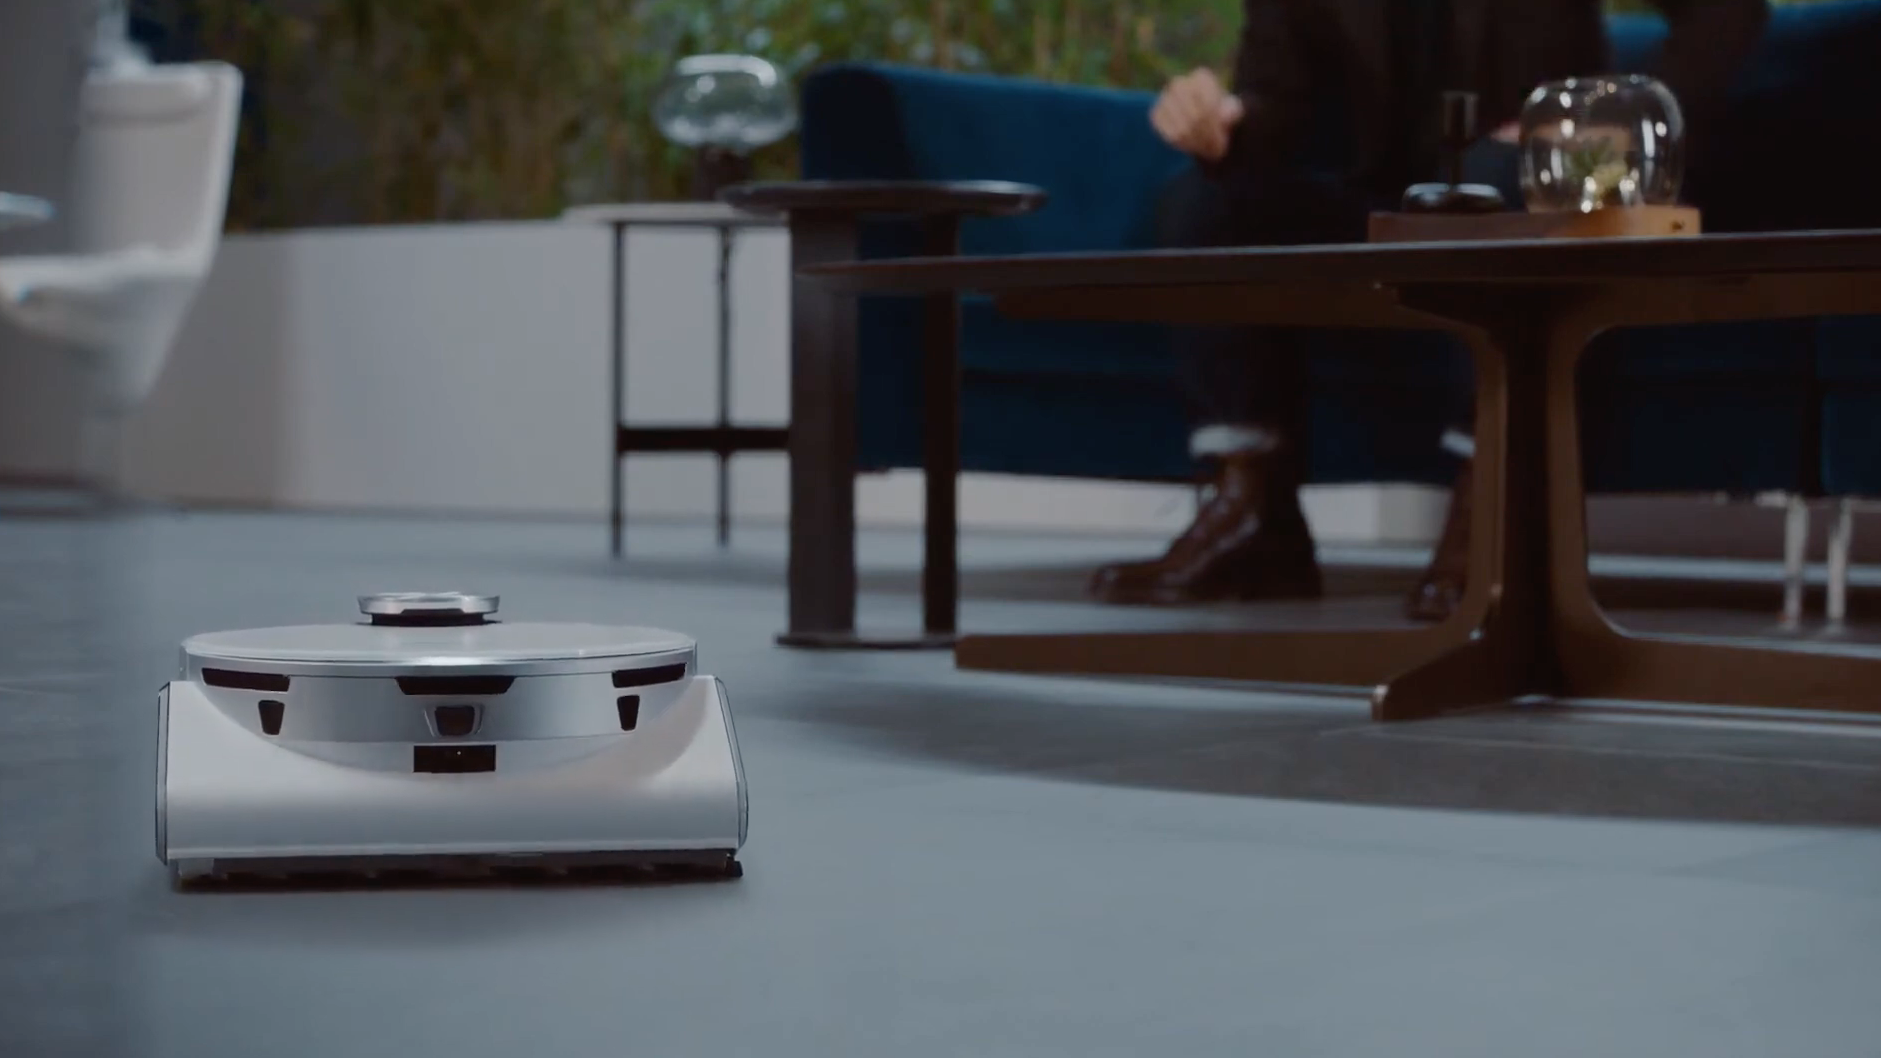 Video: Samsung introduces really, really smart robovac at CES 2021